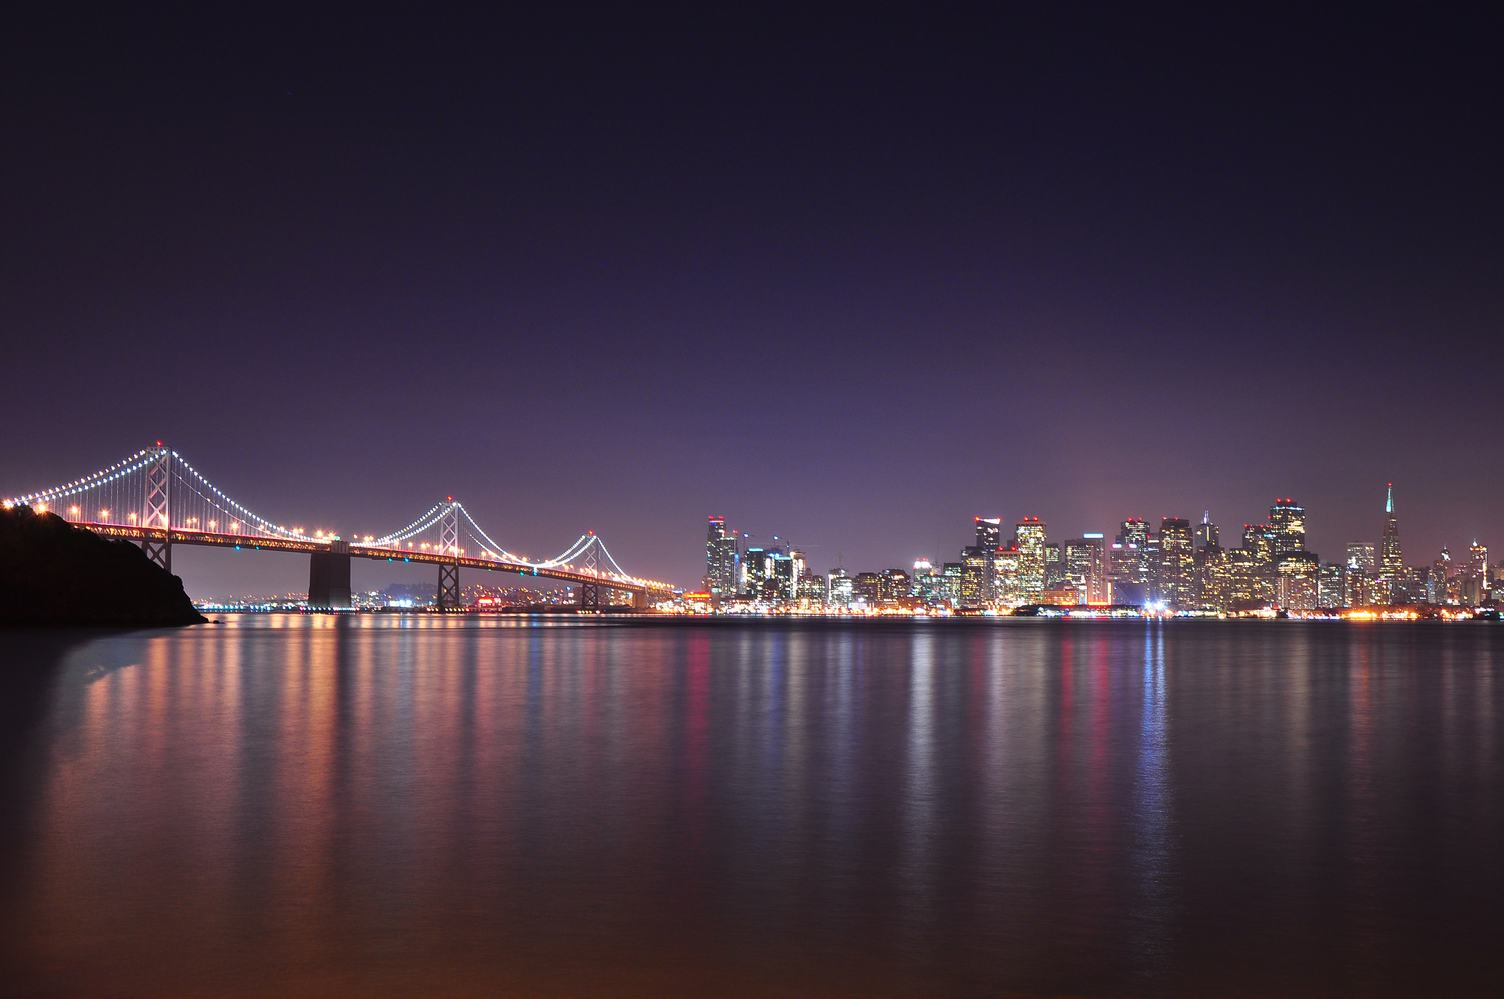 A Night View with City Lights Reflecting in a Bay